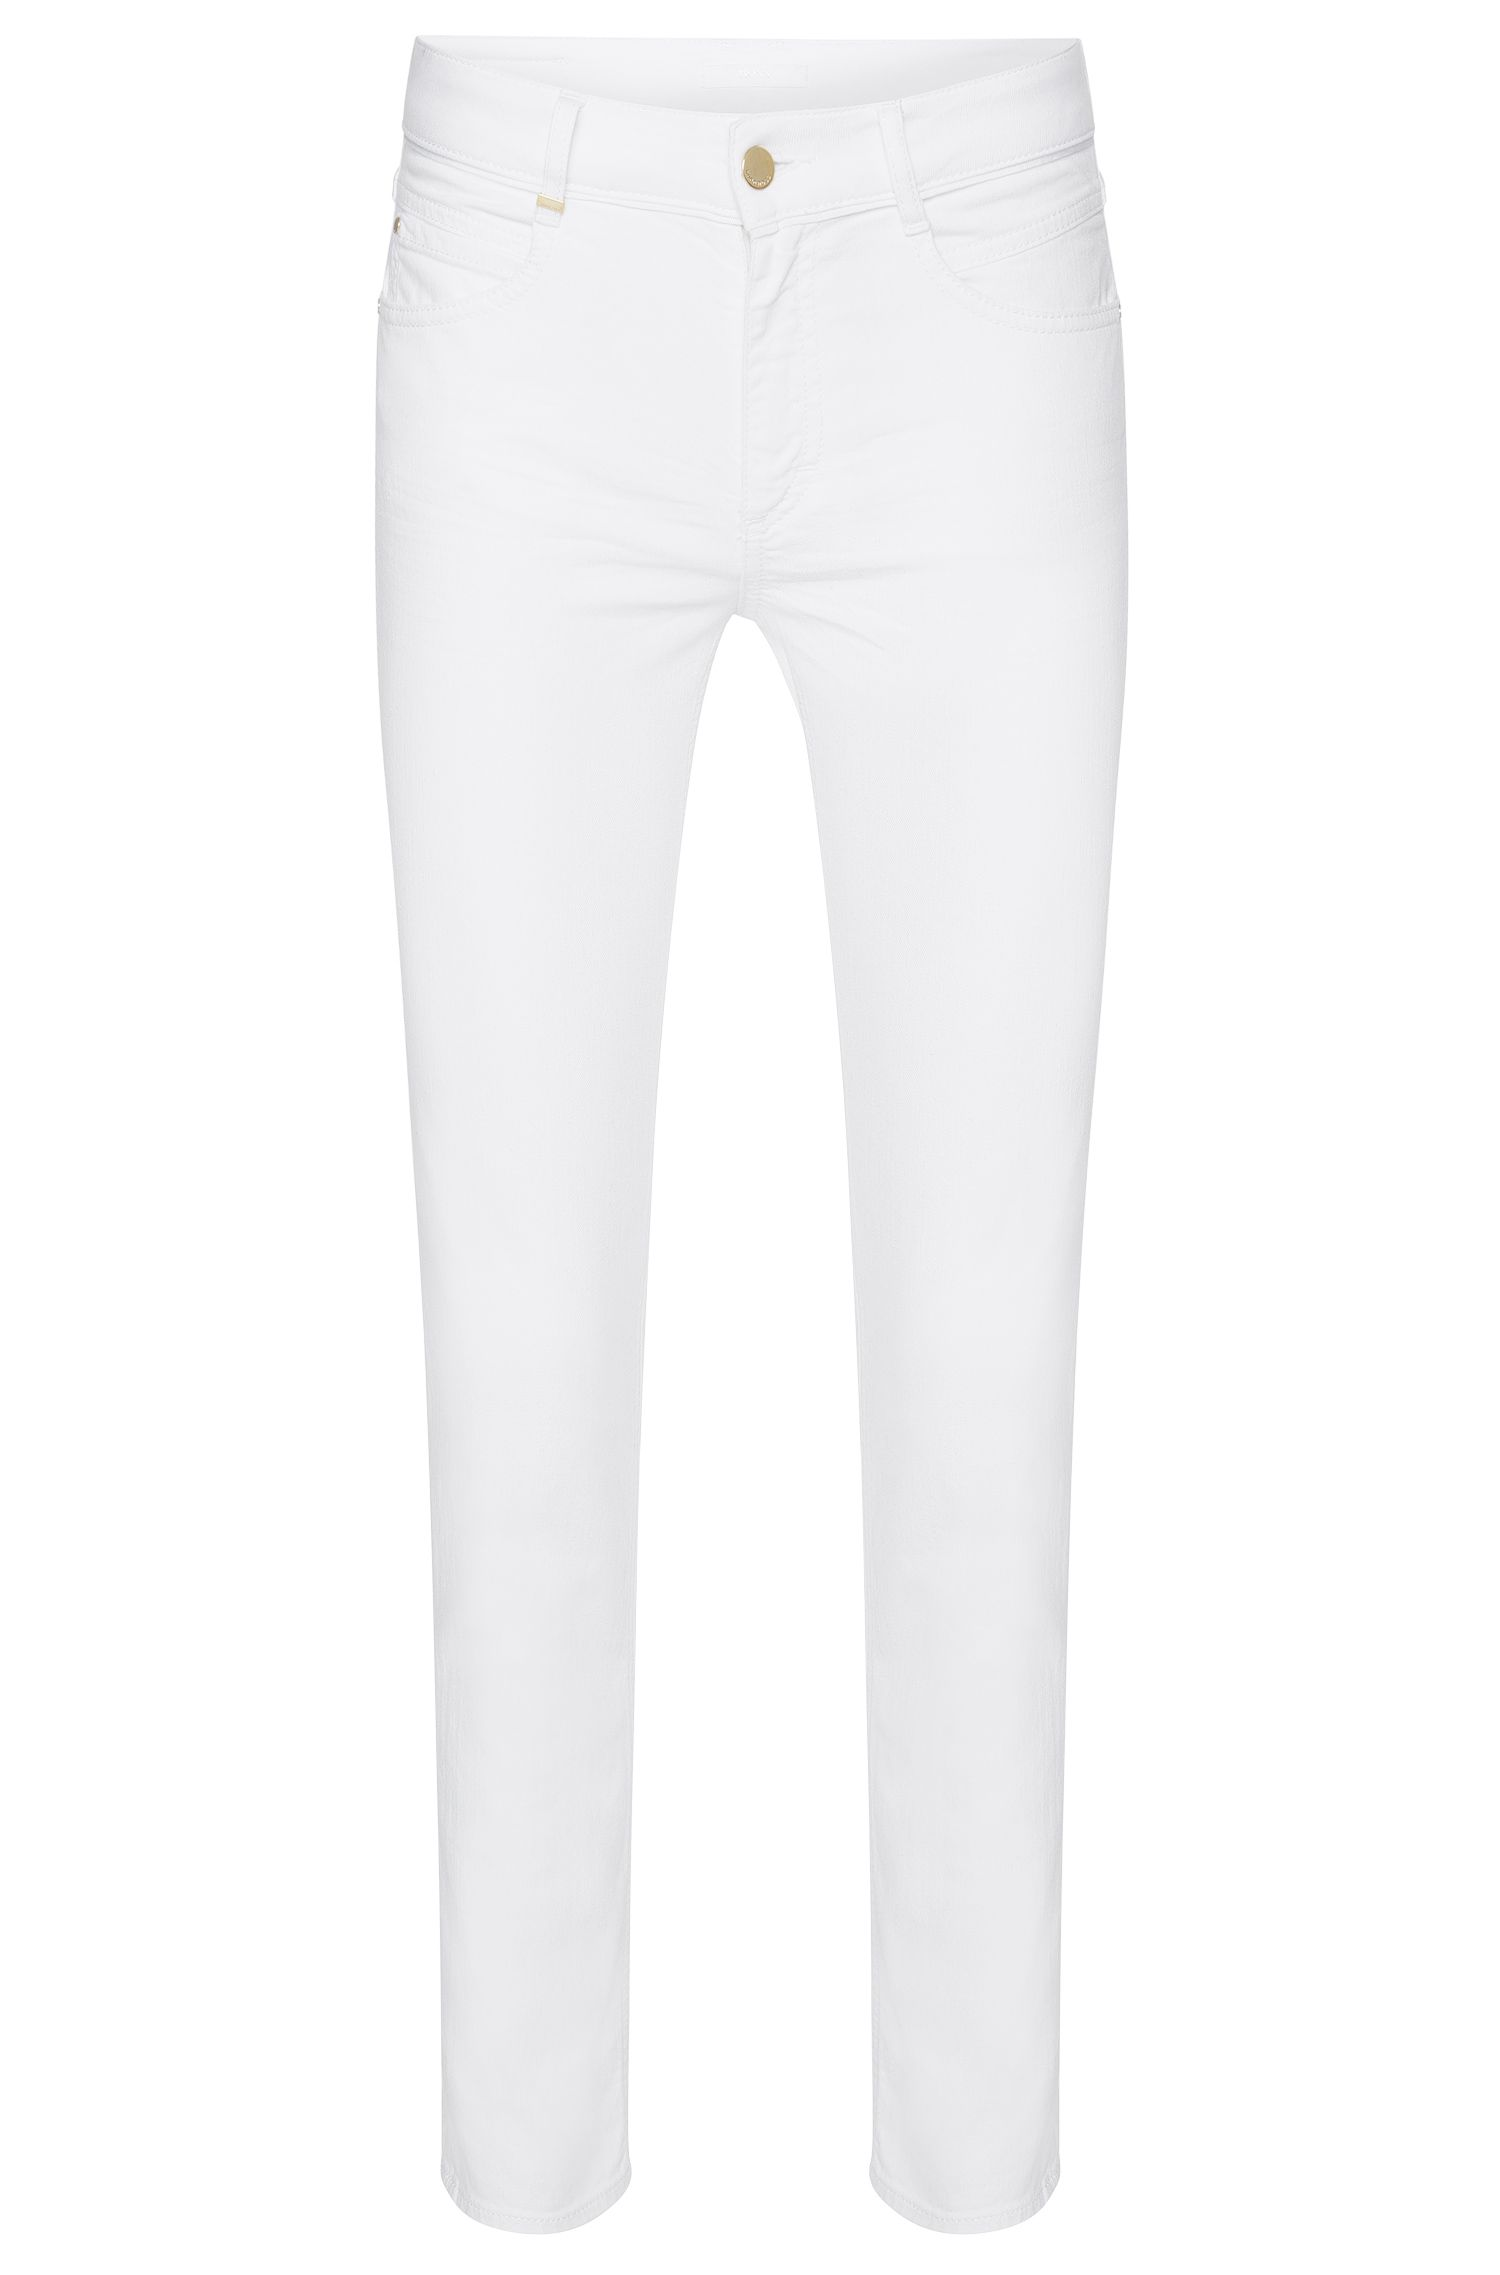 Regular-Fit Jeans aus Stretch-Baumwolle in Cropped-Länge: 'Nelin Tape'